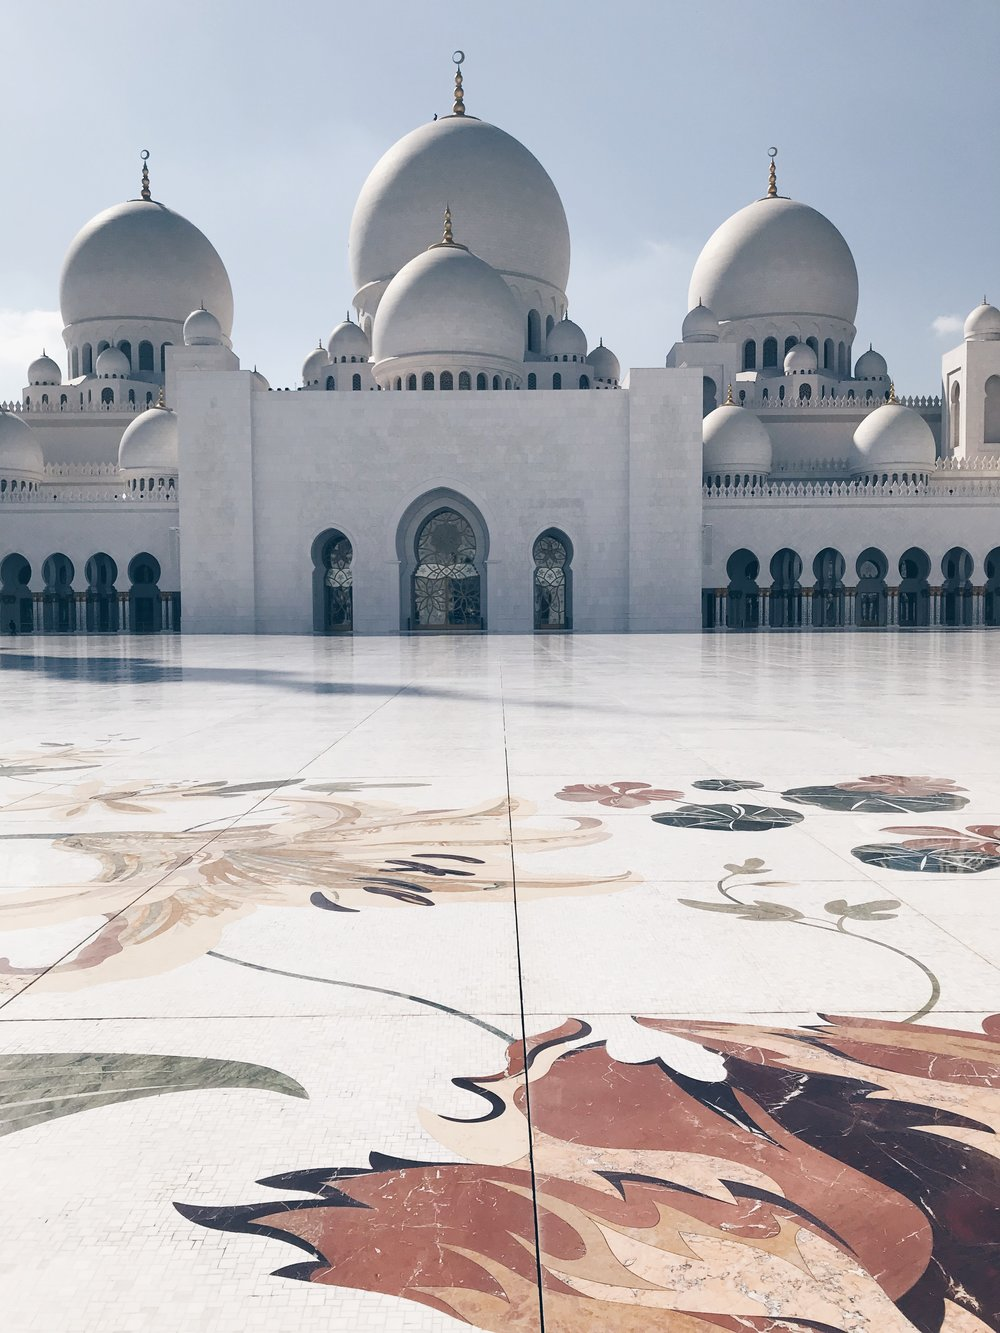 THE SHIEKH ZAYED GRAND MOSQUE -